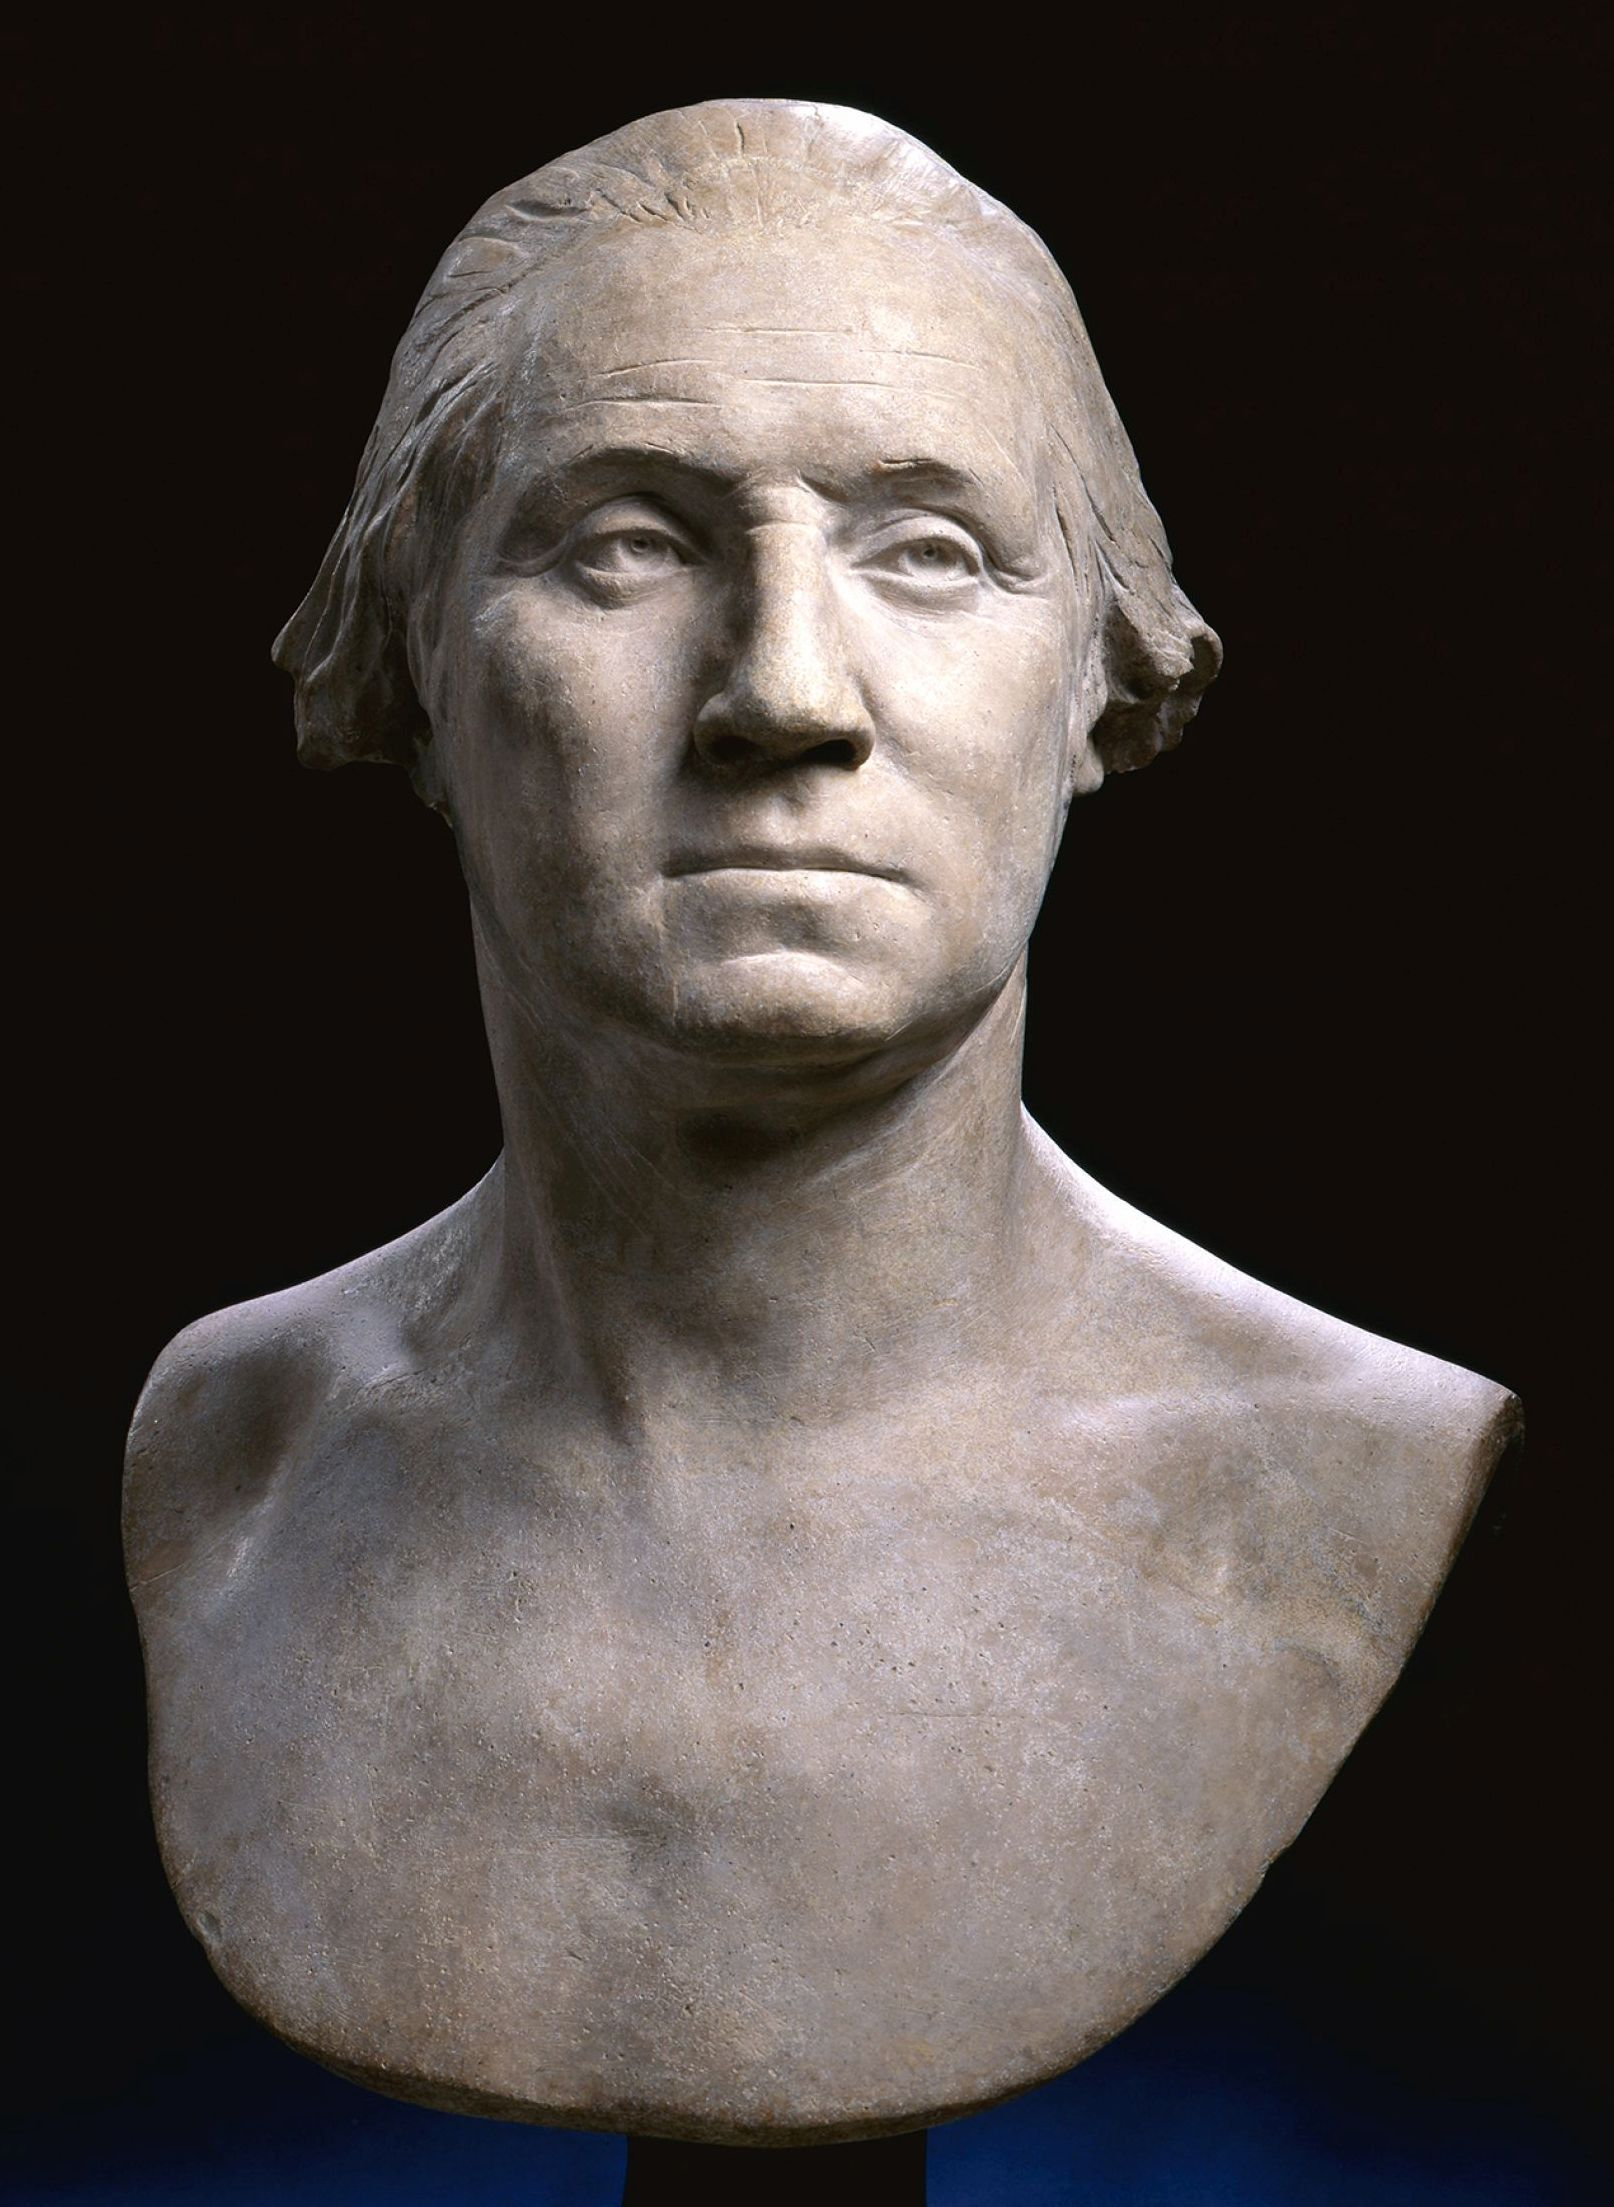 The face of the Father of his Country was captured in plaster in a life mask by the French sculptor Jean Antoine Houdon at Mount Vernon in 1785, one year after Washington resigned his commission as Commander in Chief..